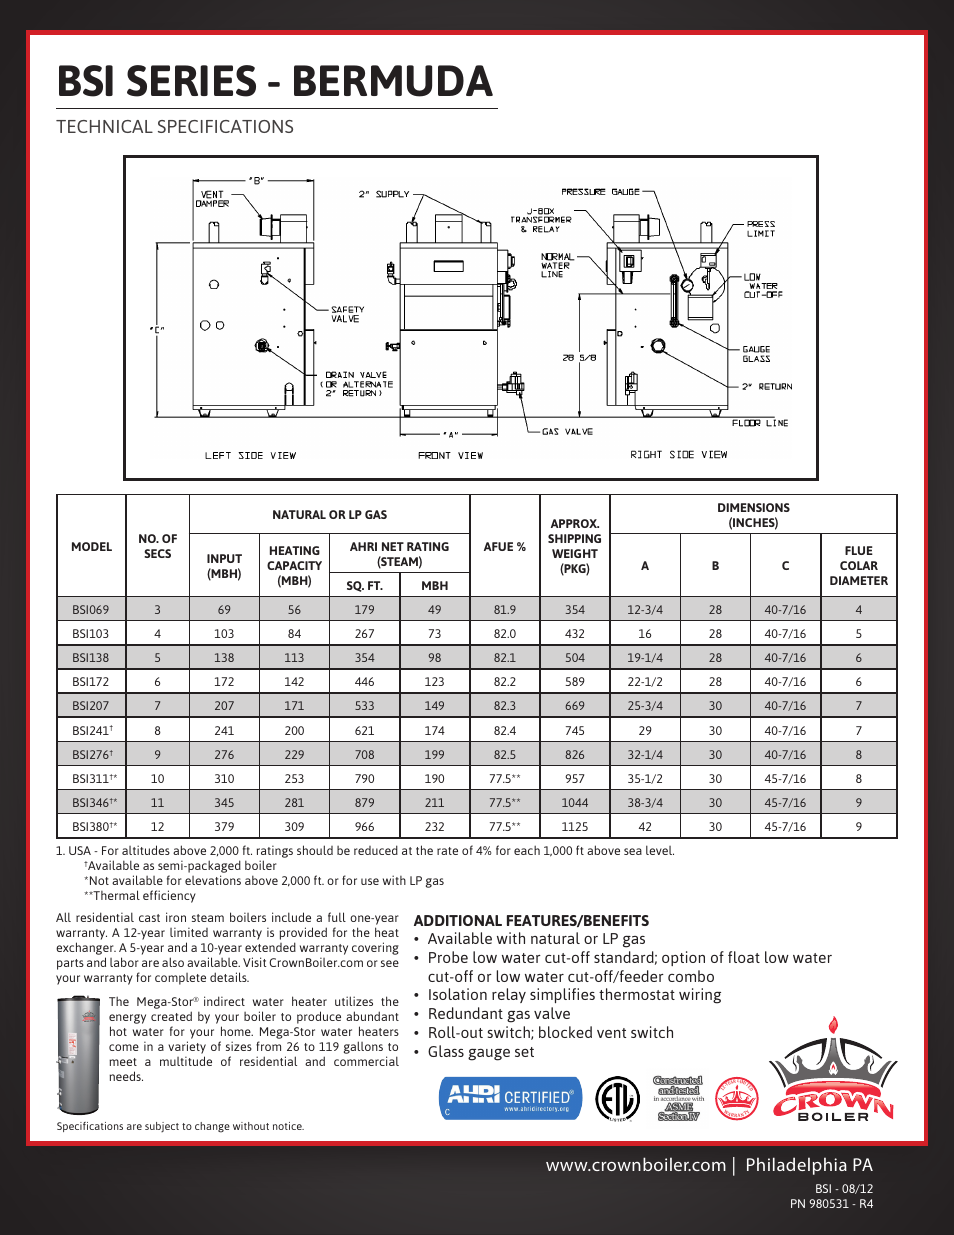 Crown Boiler Hot Water Diagram Wiring Indirect Heater Vertical 954x1235